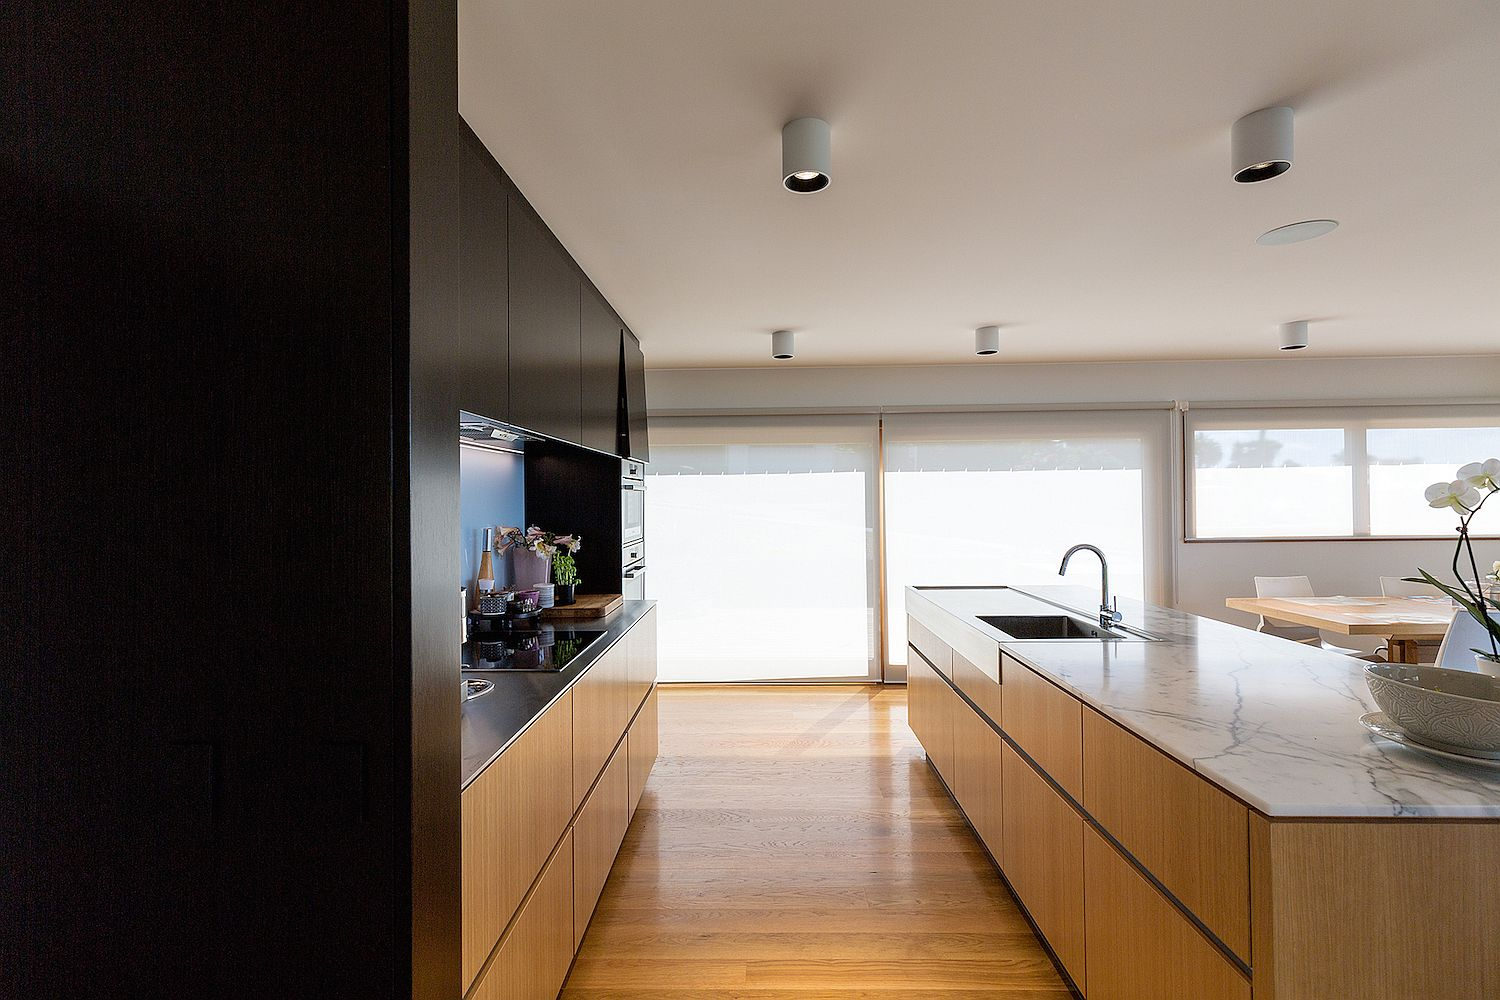 Kitchen and dining area along with the living space in wood with unabated views